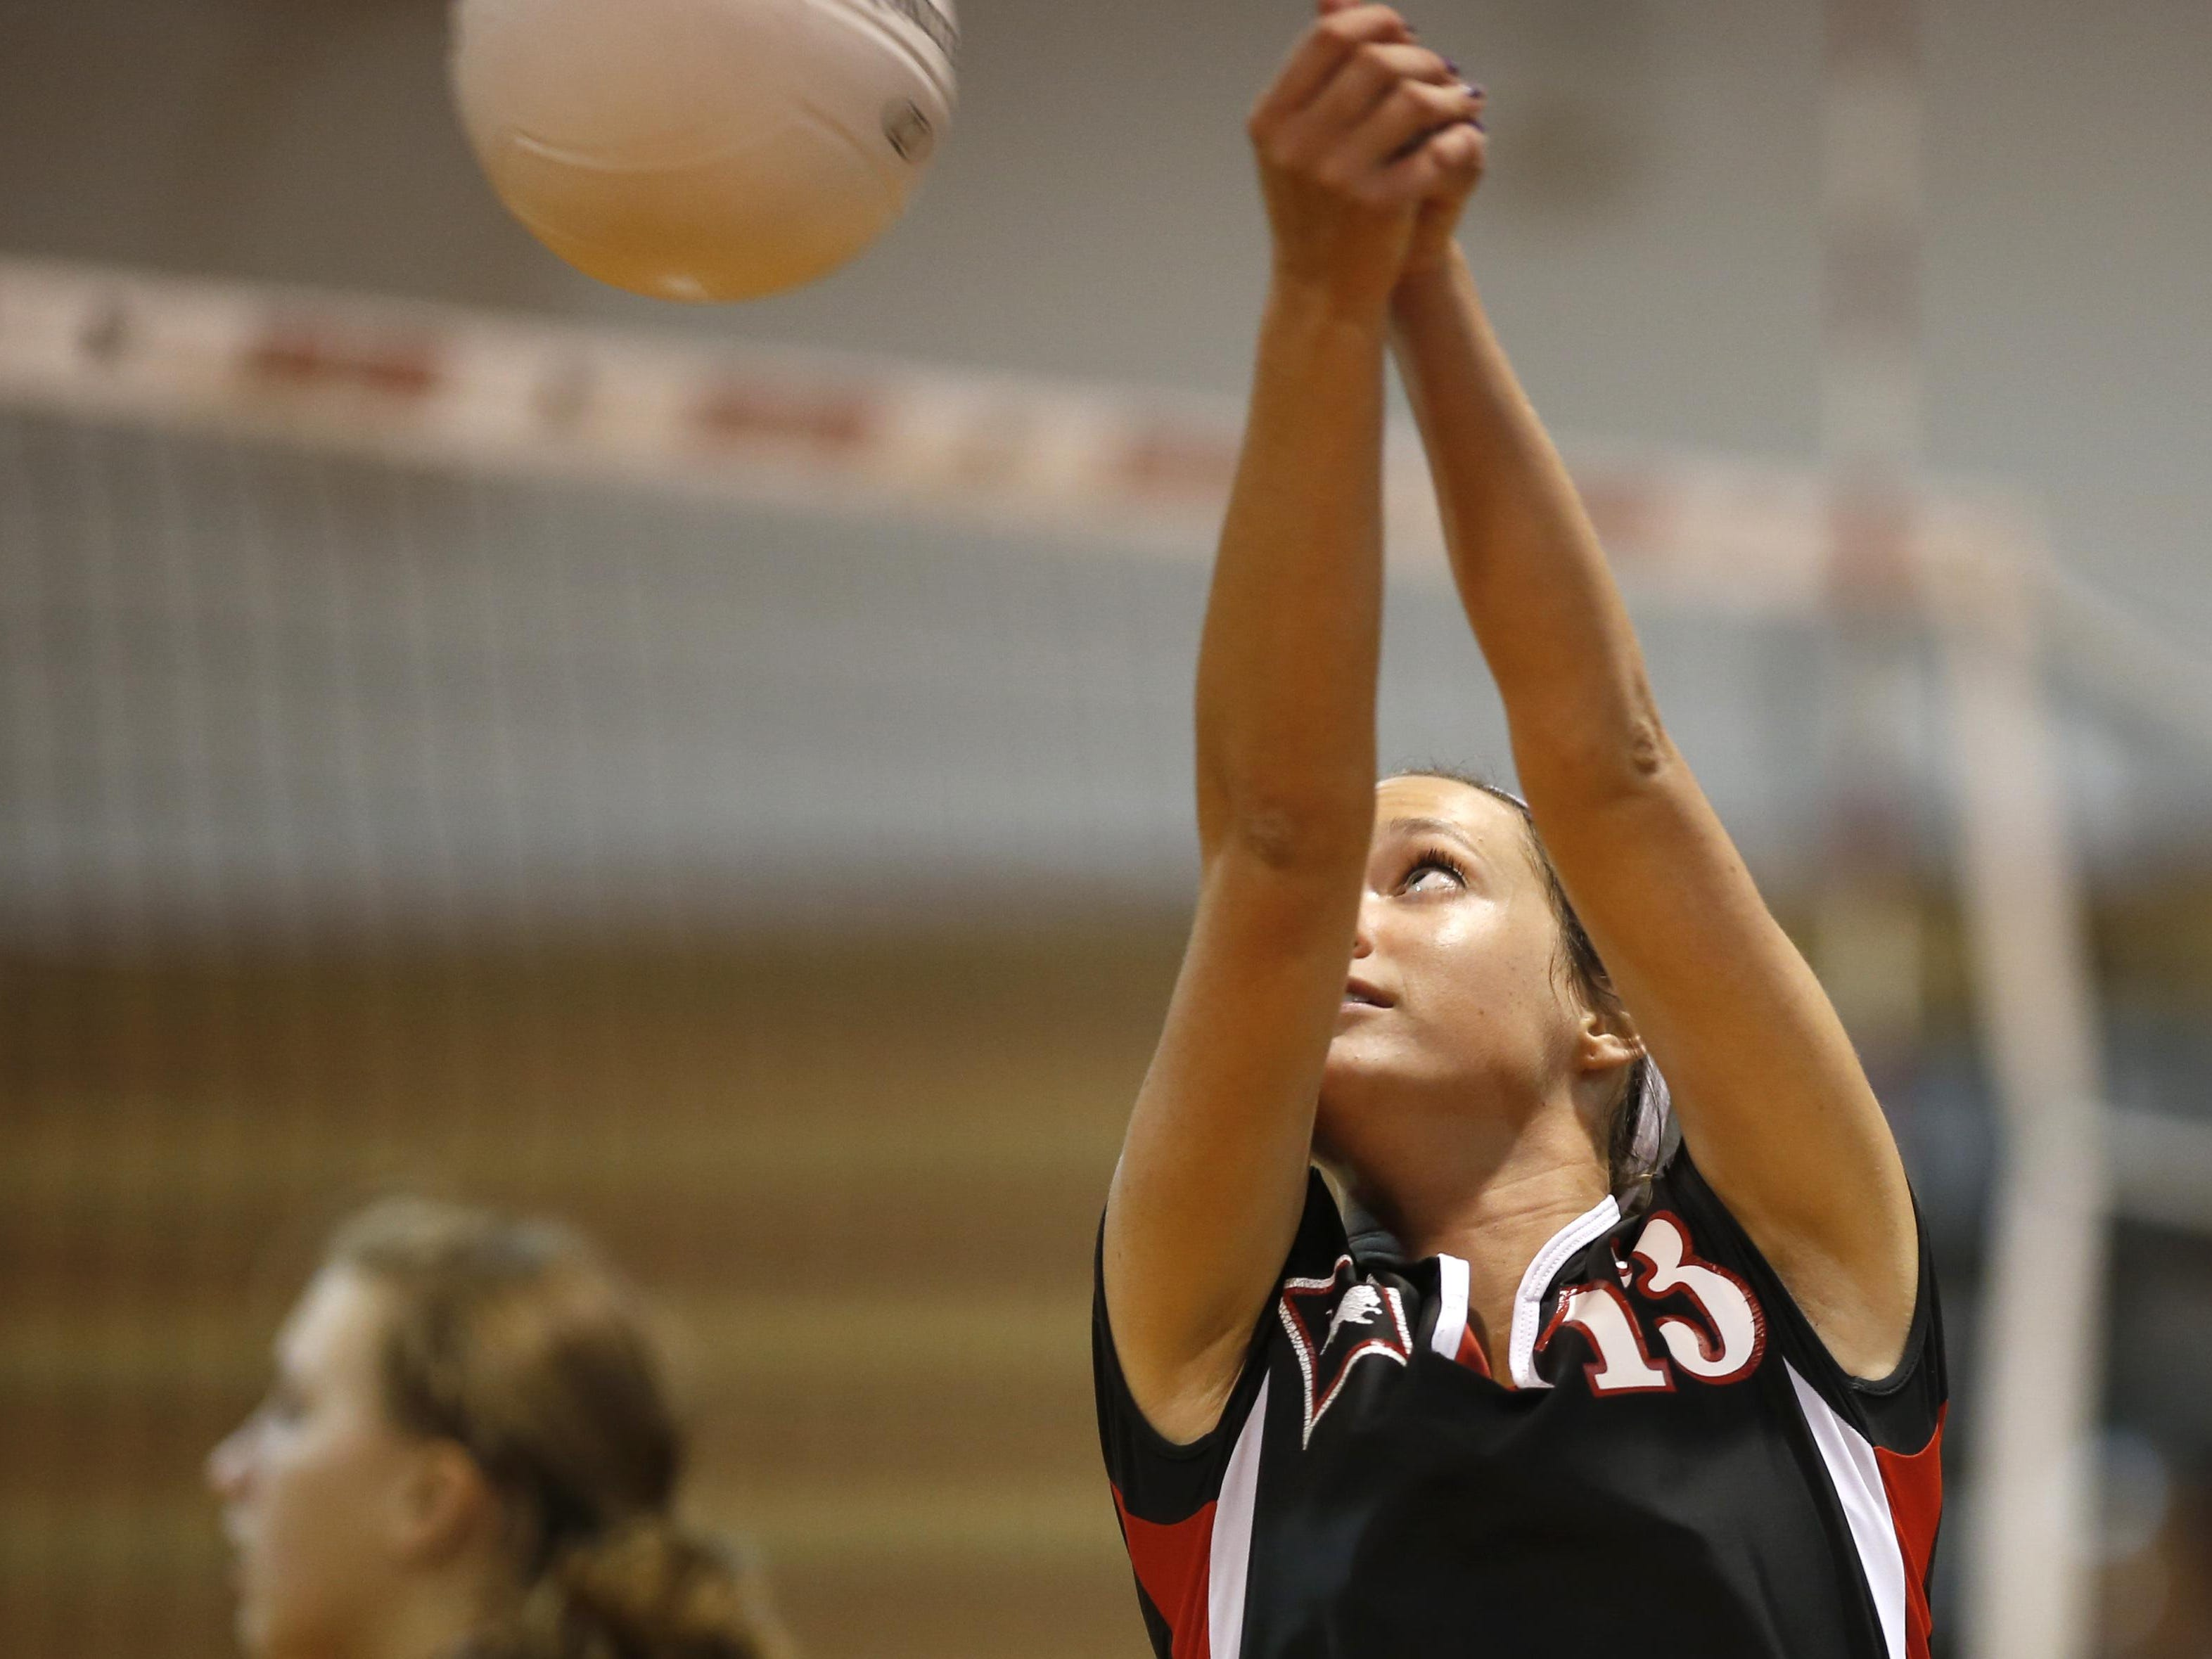 Leon senior setter Jaynie Mitchell posted 115 assists, 30 digs and five aces as the Lions went 3-2 at Berkeley Prep's tournament in Tampa.